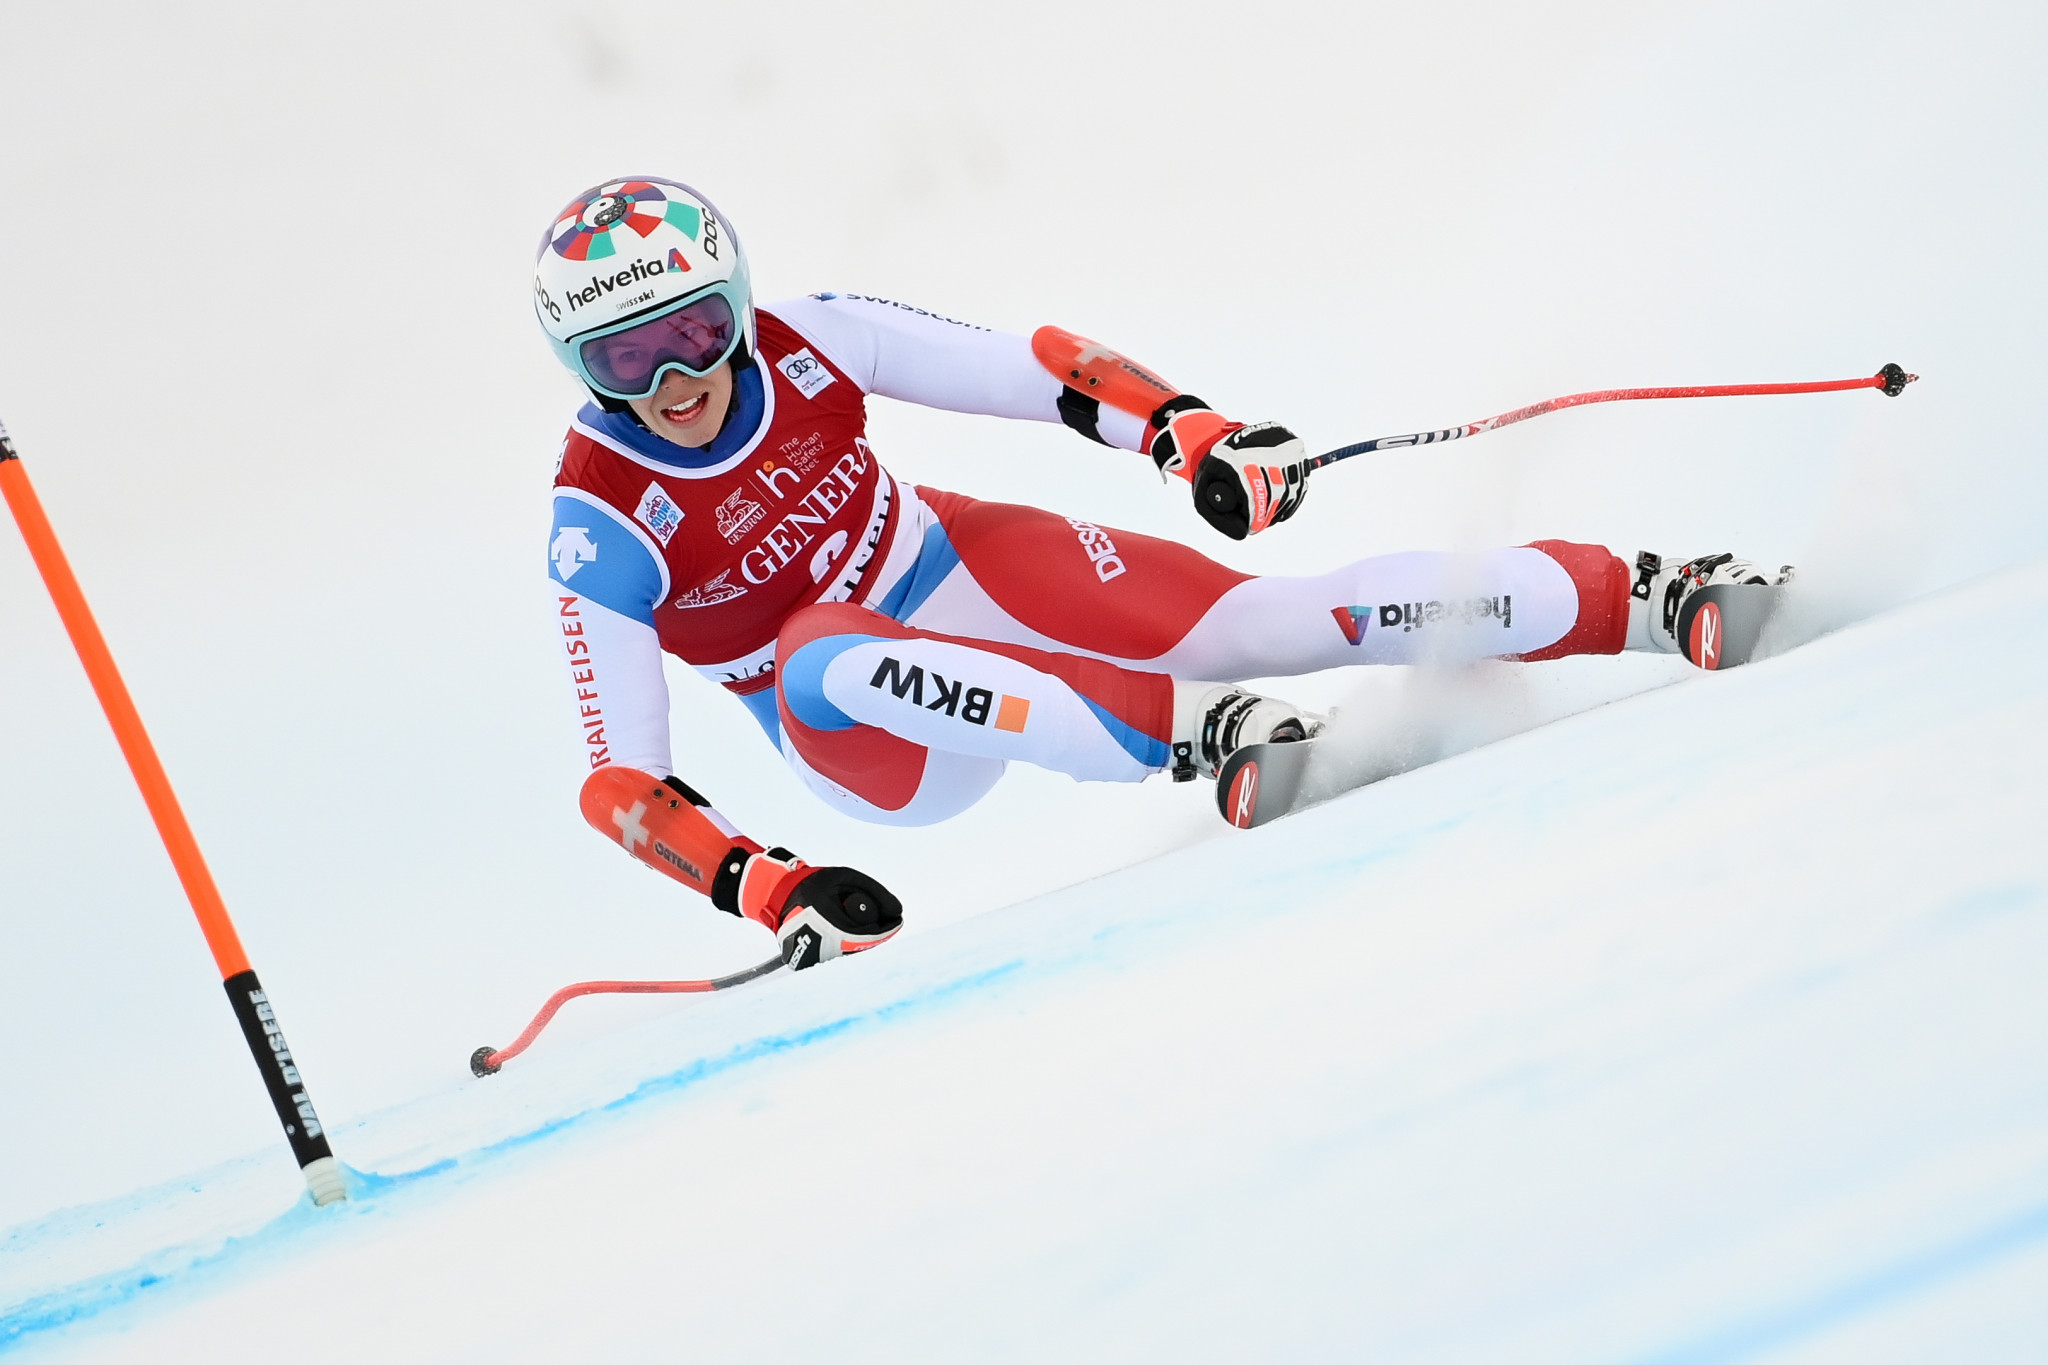 Michelle Gisin claimed her first win of the calendar year at the FIS Alpine Ski World Cup women's slalom in Semmering ©Getty Images